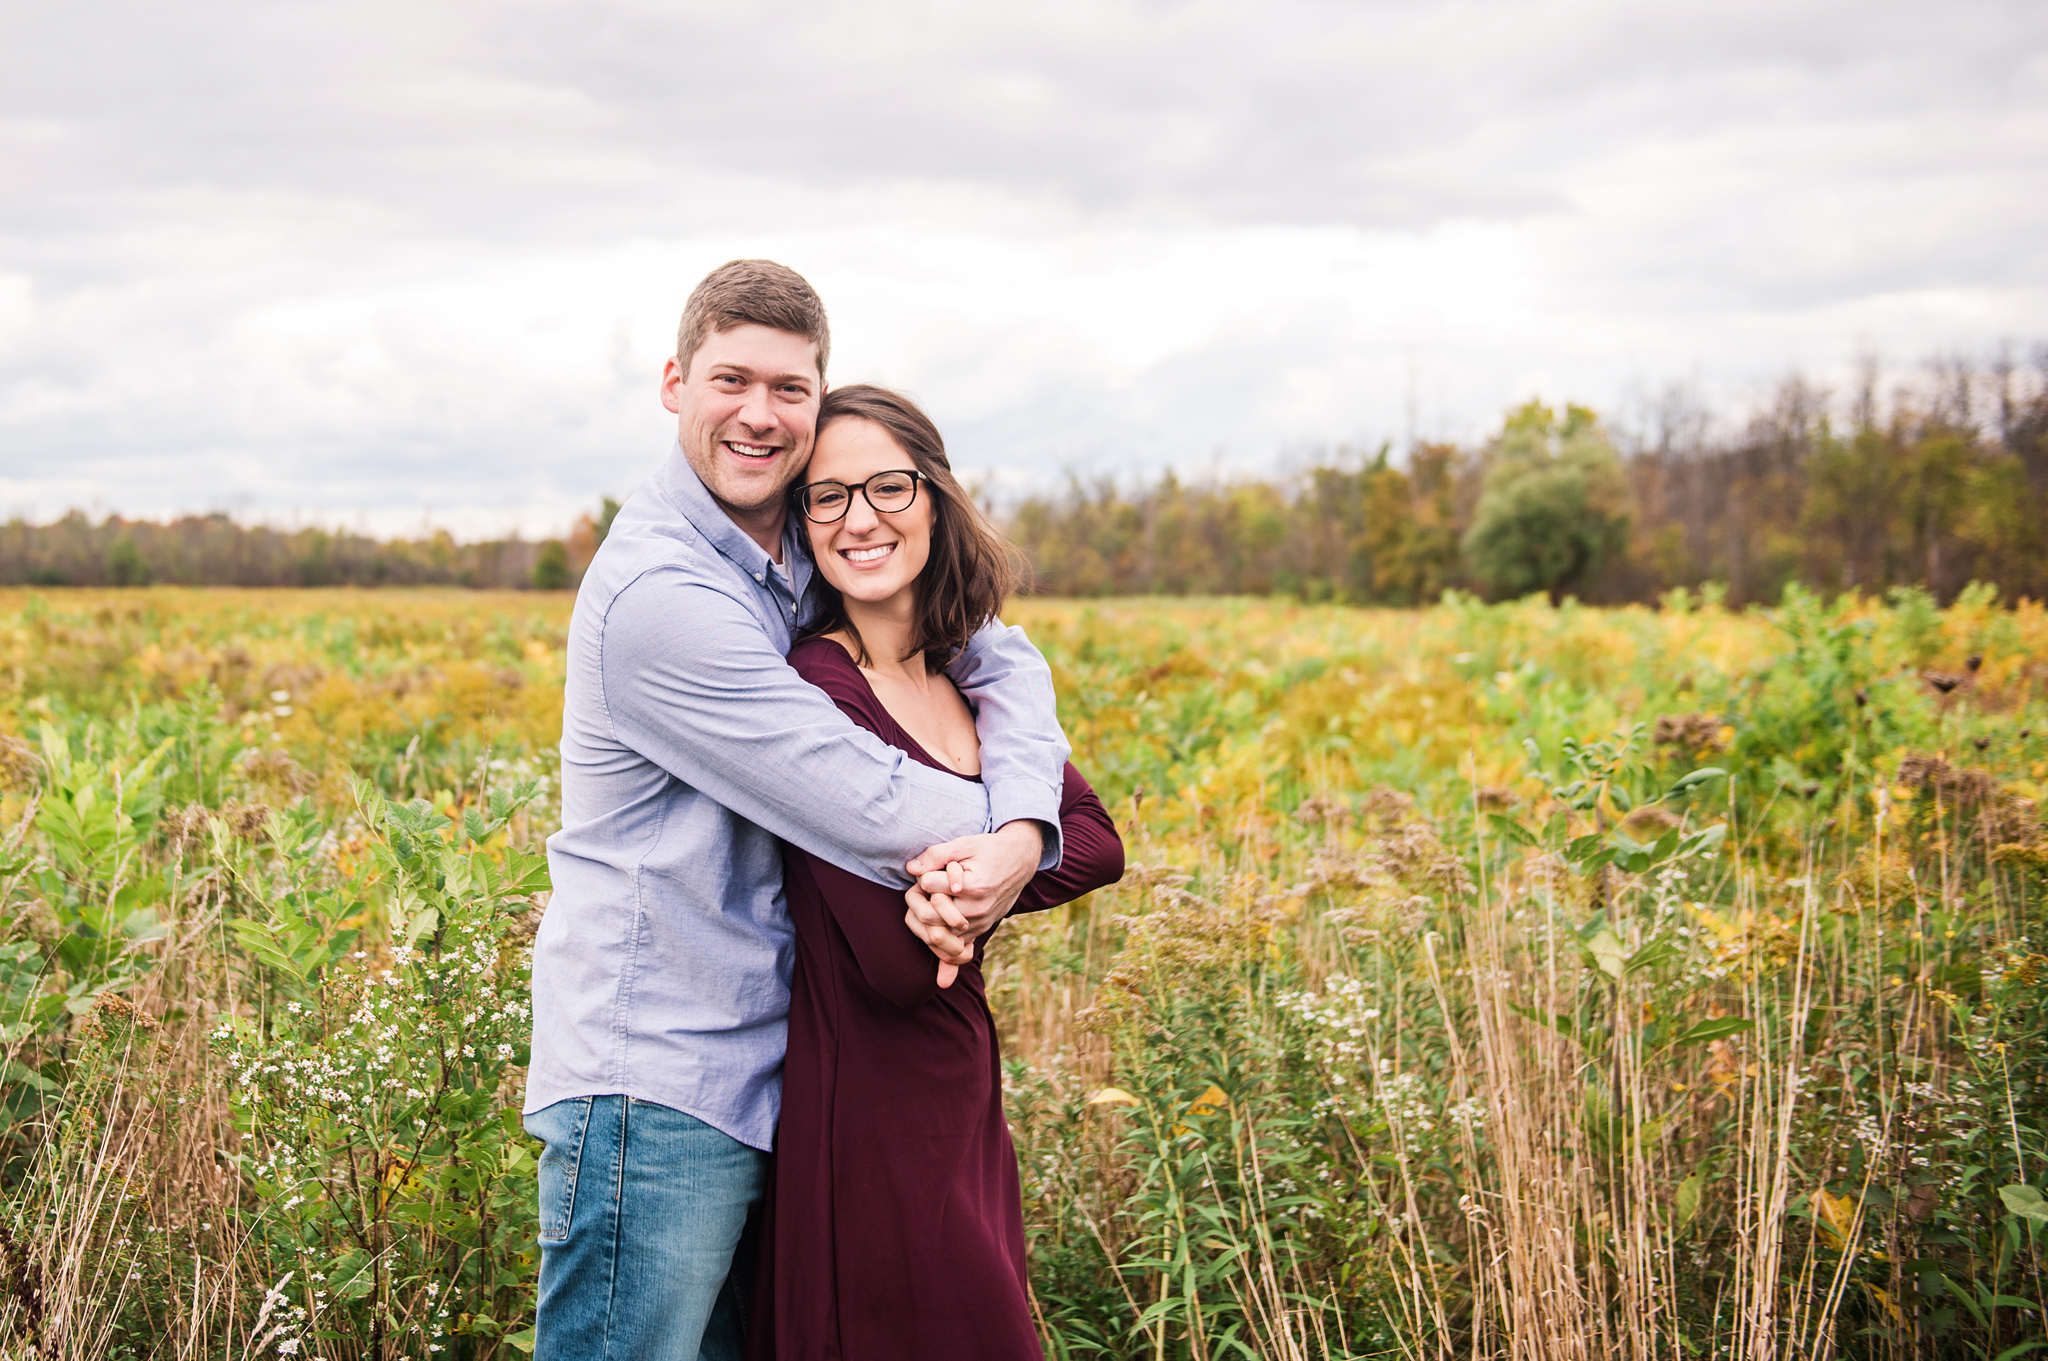 Hurd_Orchards_Rochester_Engagement_Session_JILL_STUDIO_Rochester_NY_Photographer_DSC_2021.jpg